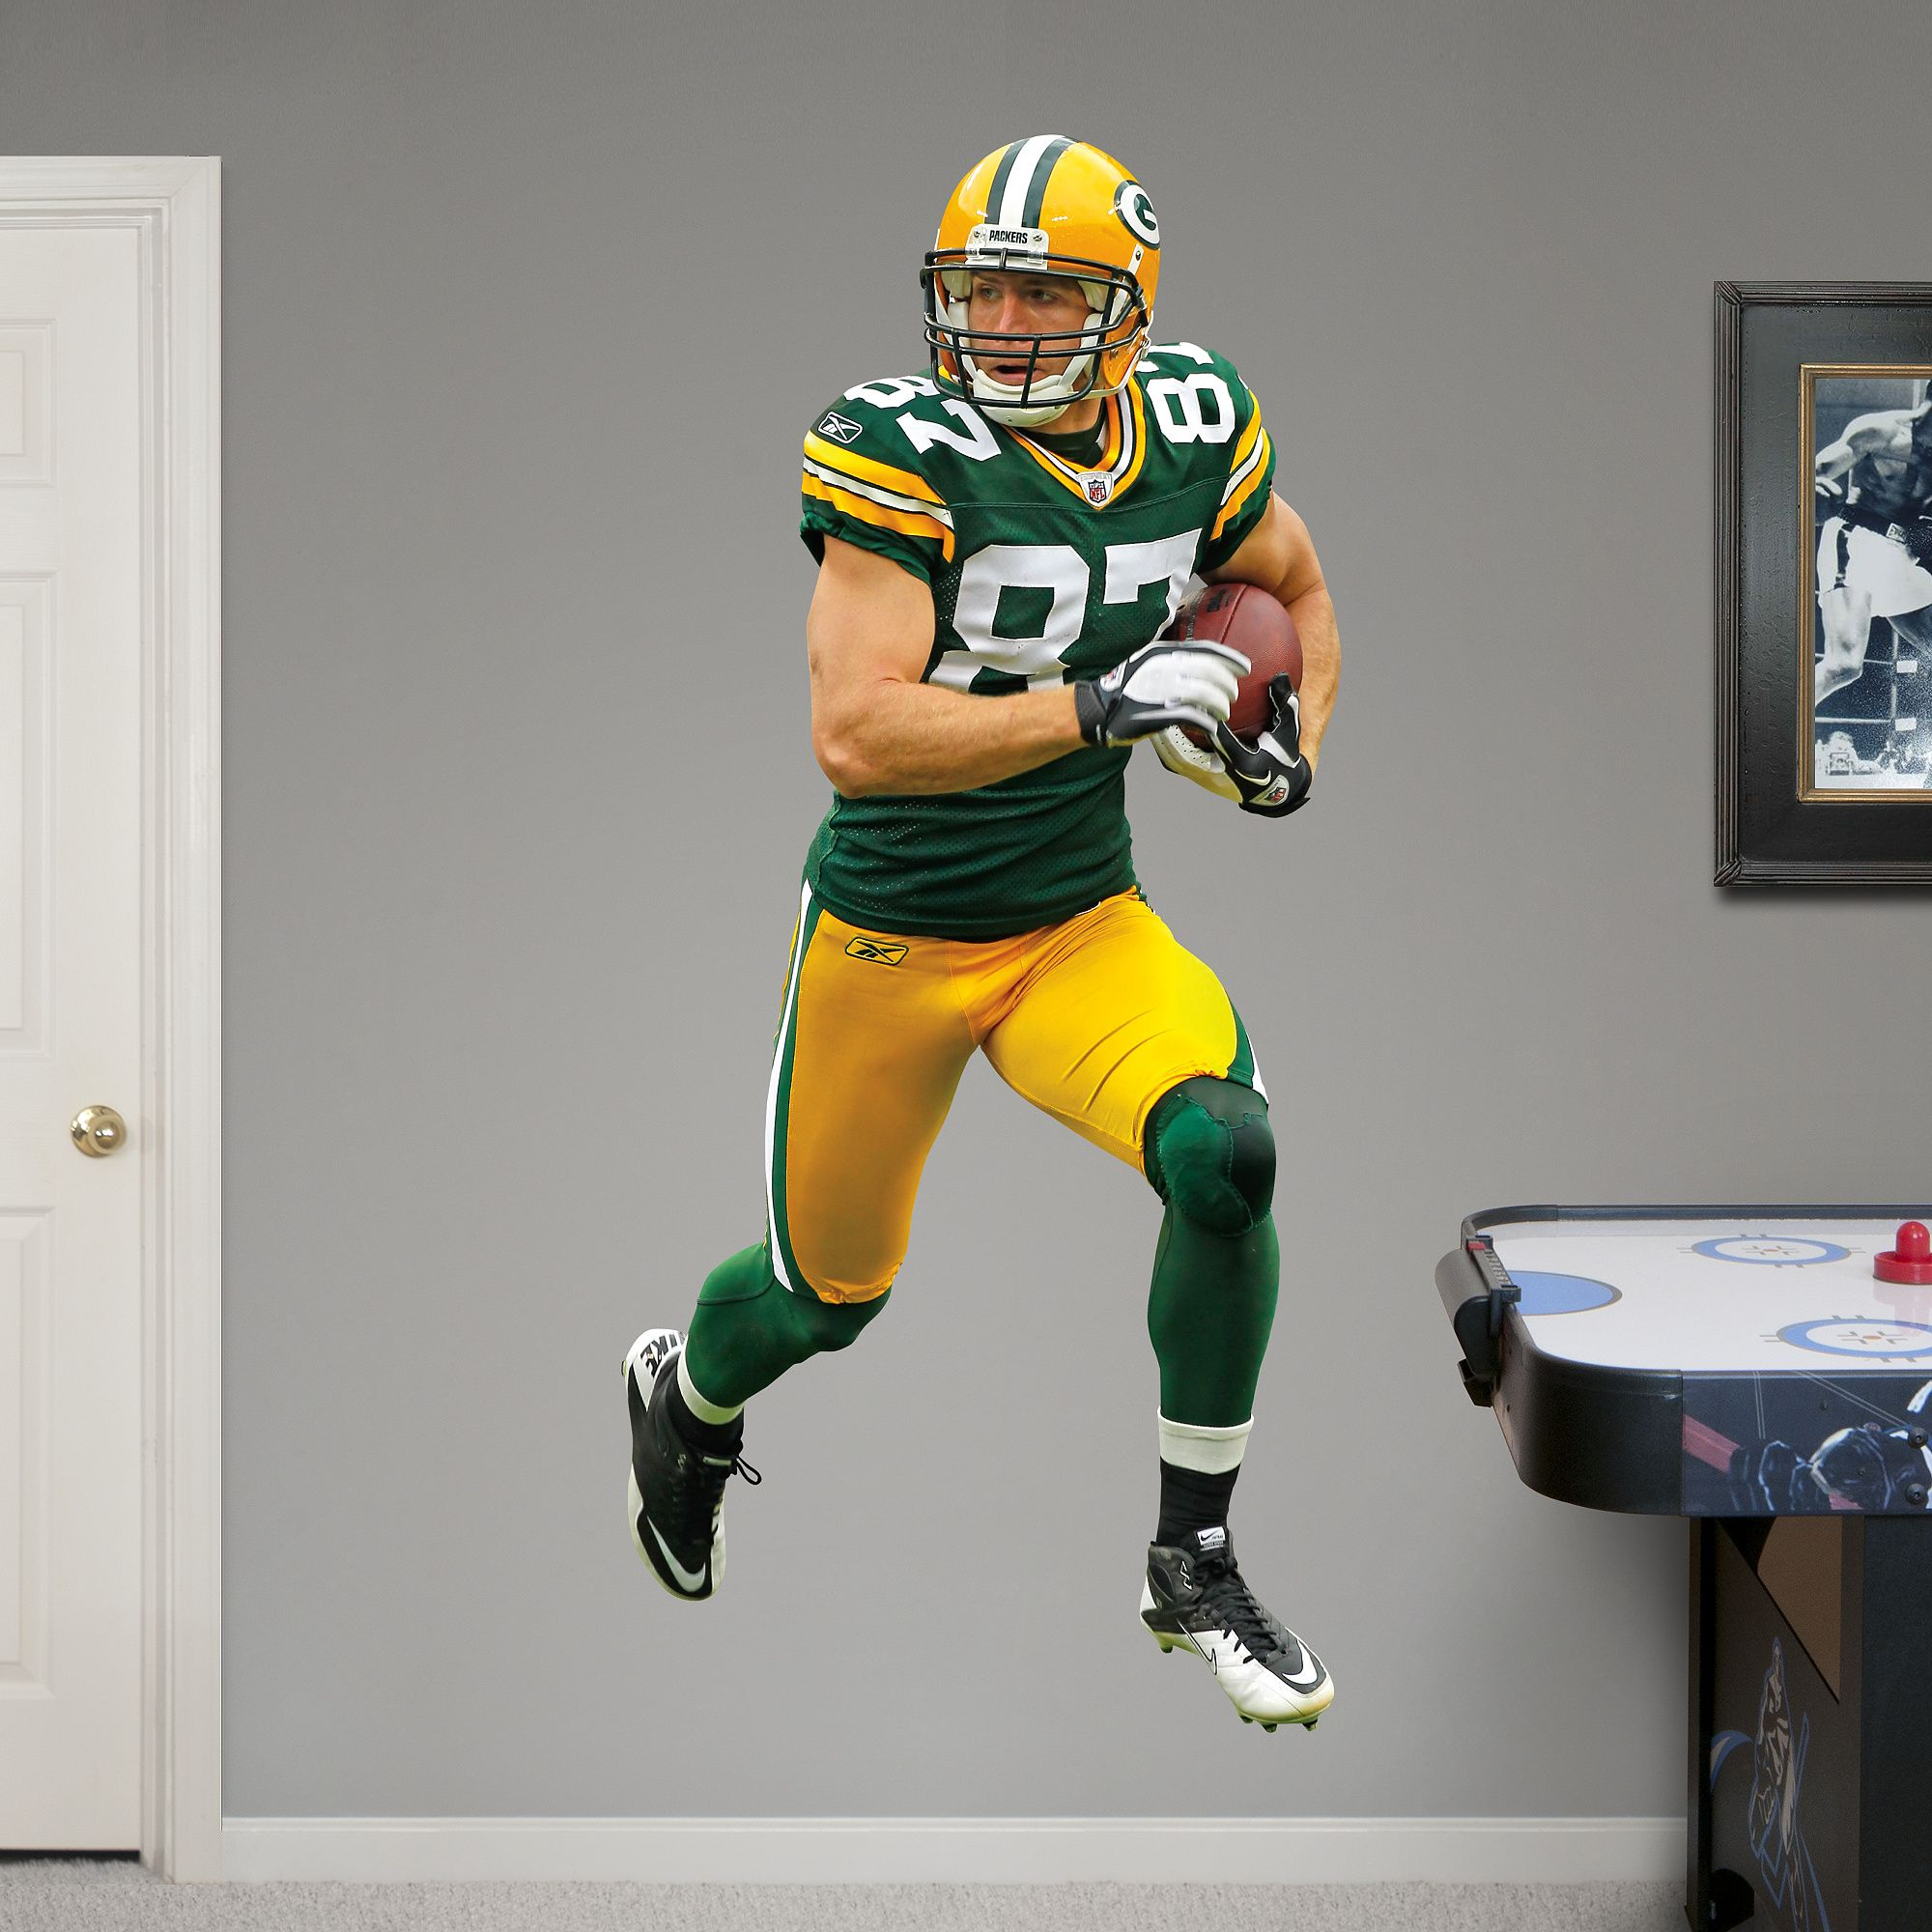 Jordy Nelson Real Big Fathead Wall Decal Green Bay Packers Wall Decal Dallas Sports Nfl Packers Nfl Green Bay